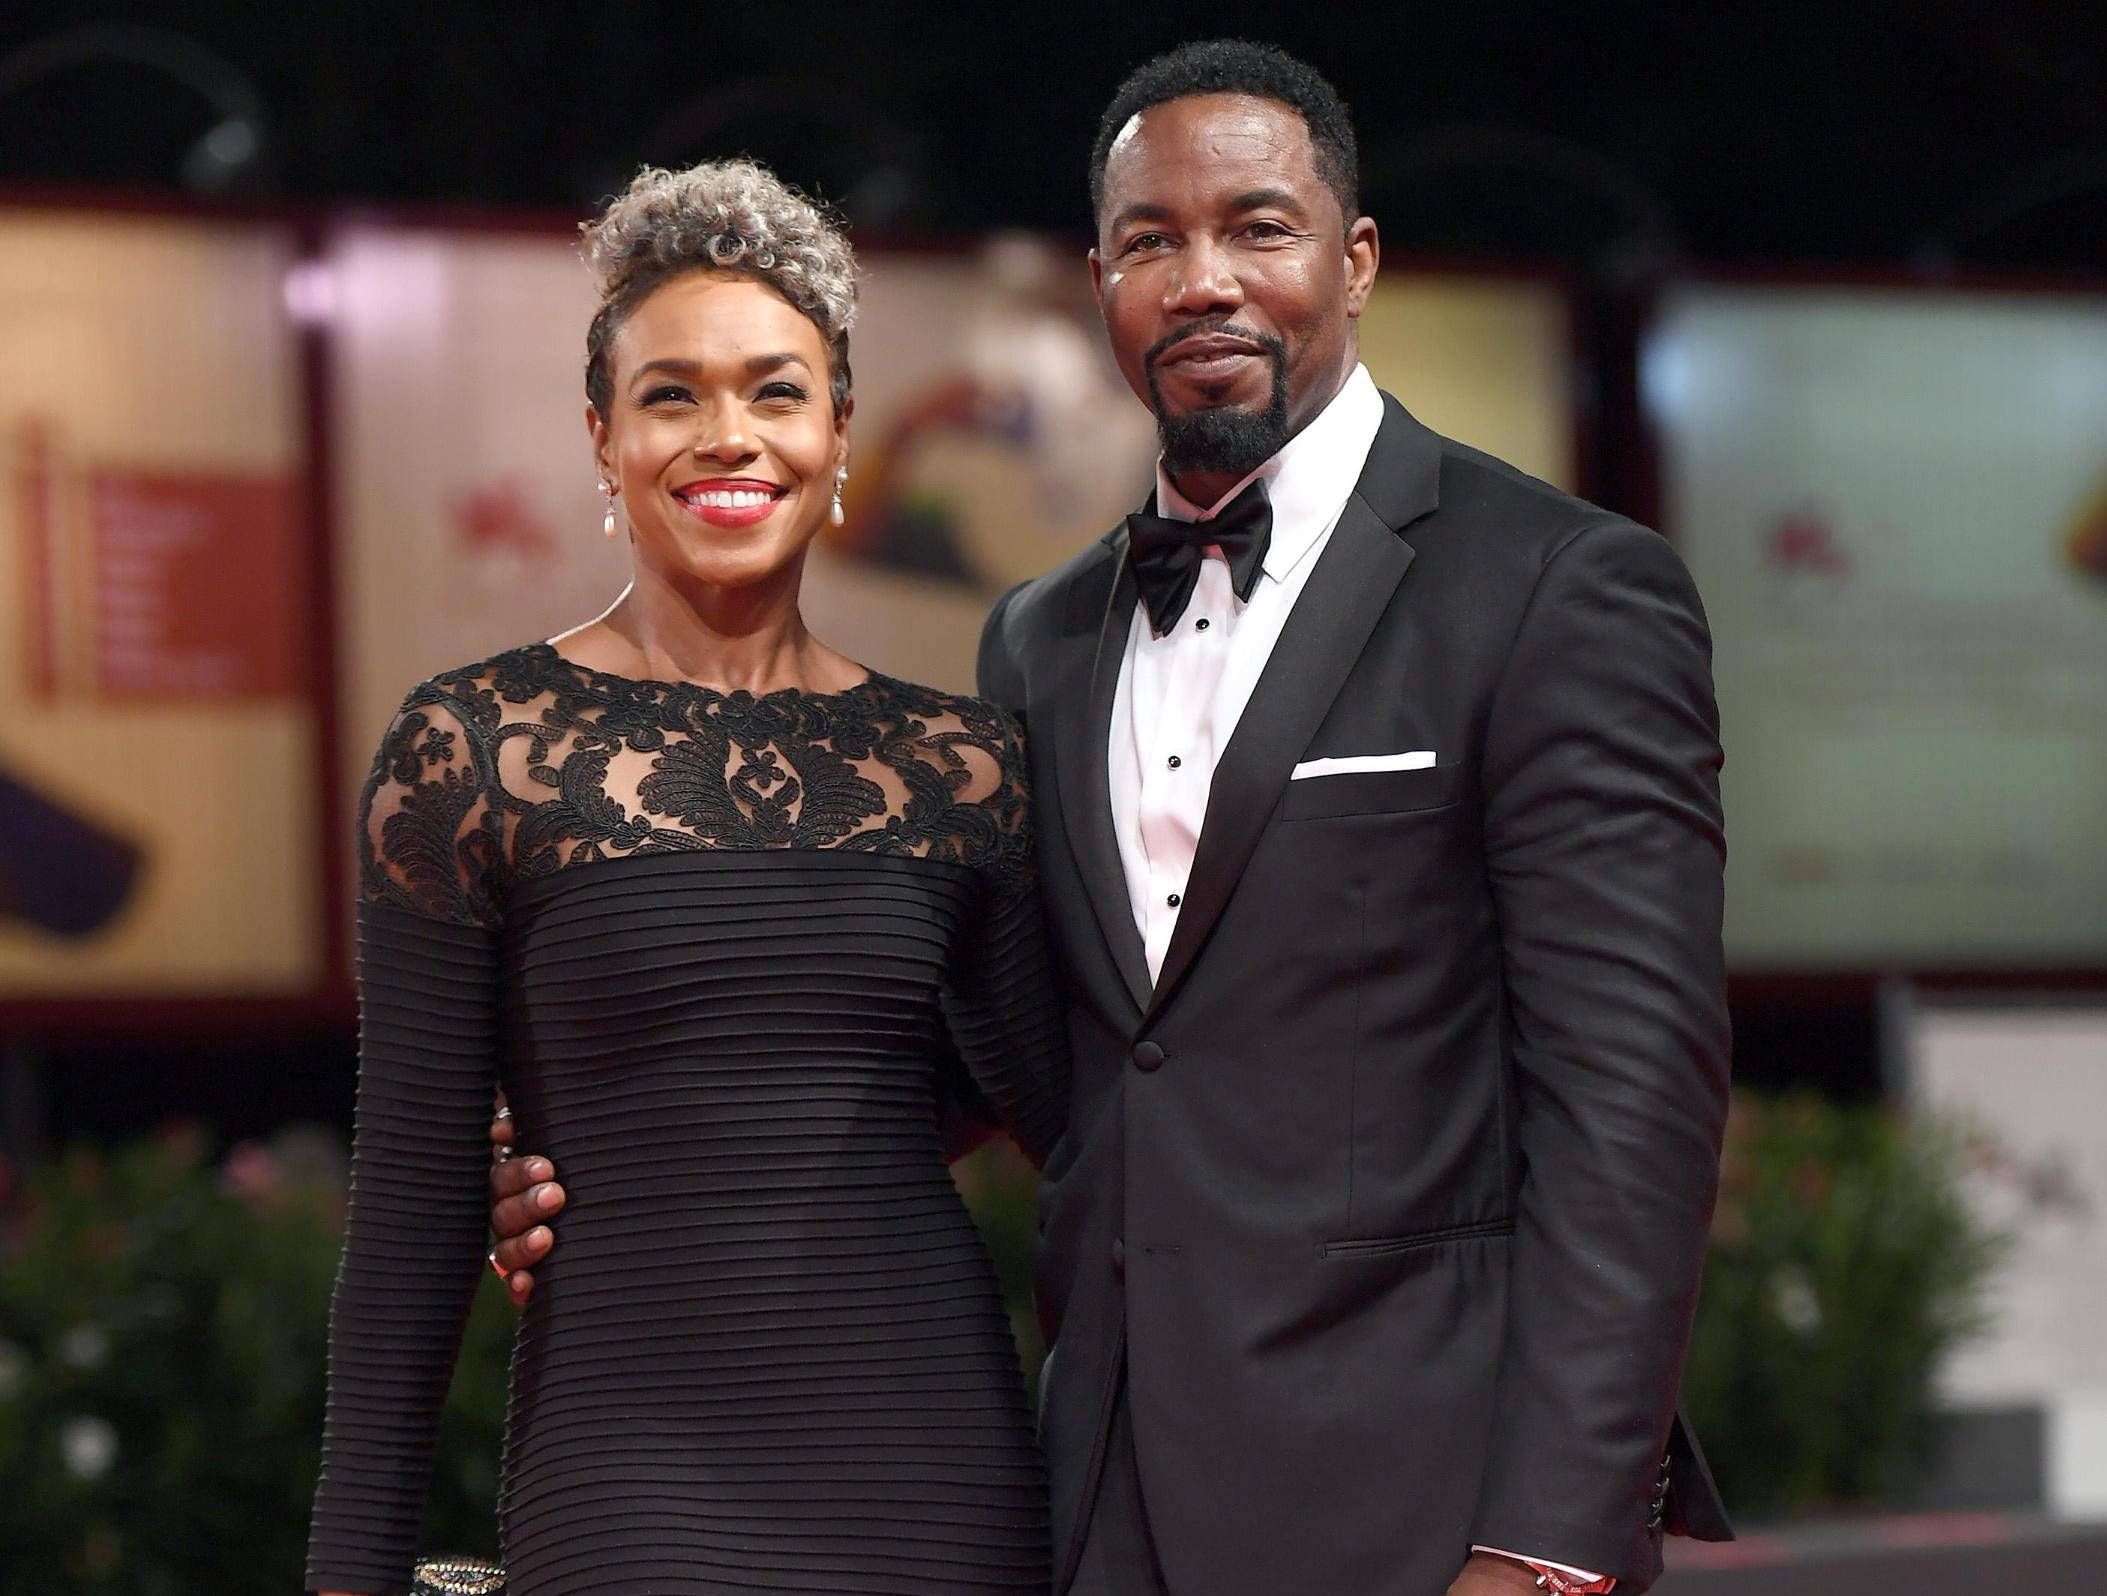 epa06995310 US actor Michael Jai White and Gillian Iliana Waters, arrive for the premiere of 'Dragged Across Concrete' during the 75th annual Venice International Film Festival, in Venice, Italy, 03 September 2018. The movie is presented in out competition at the festival running from 29 August to 08 September 2018.  EPA-EFE/CLAUDIO ONORATI